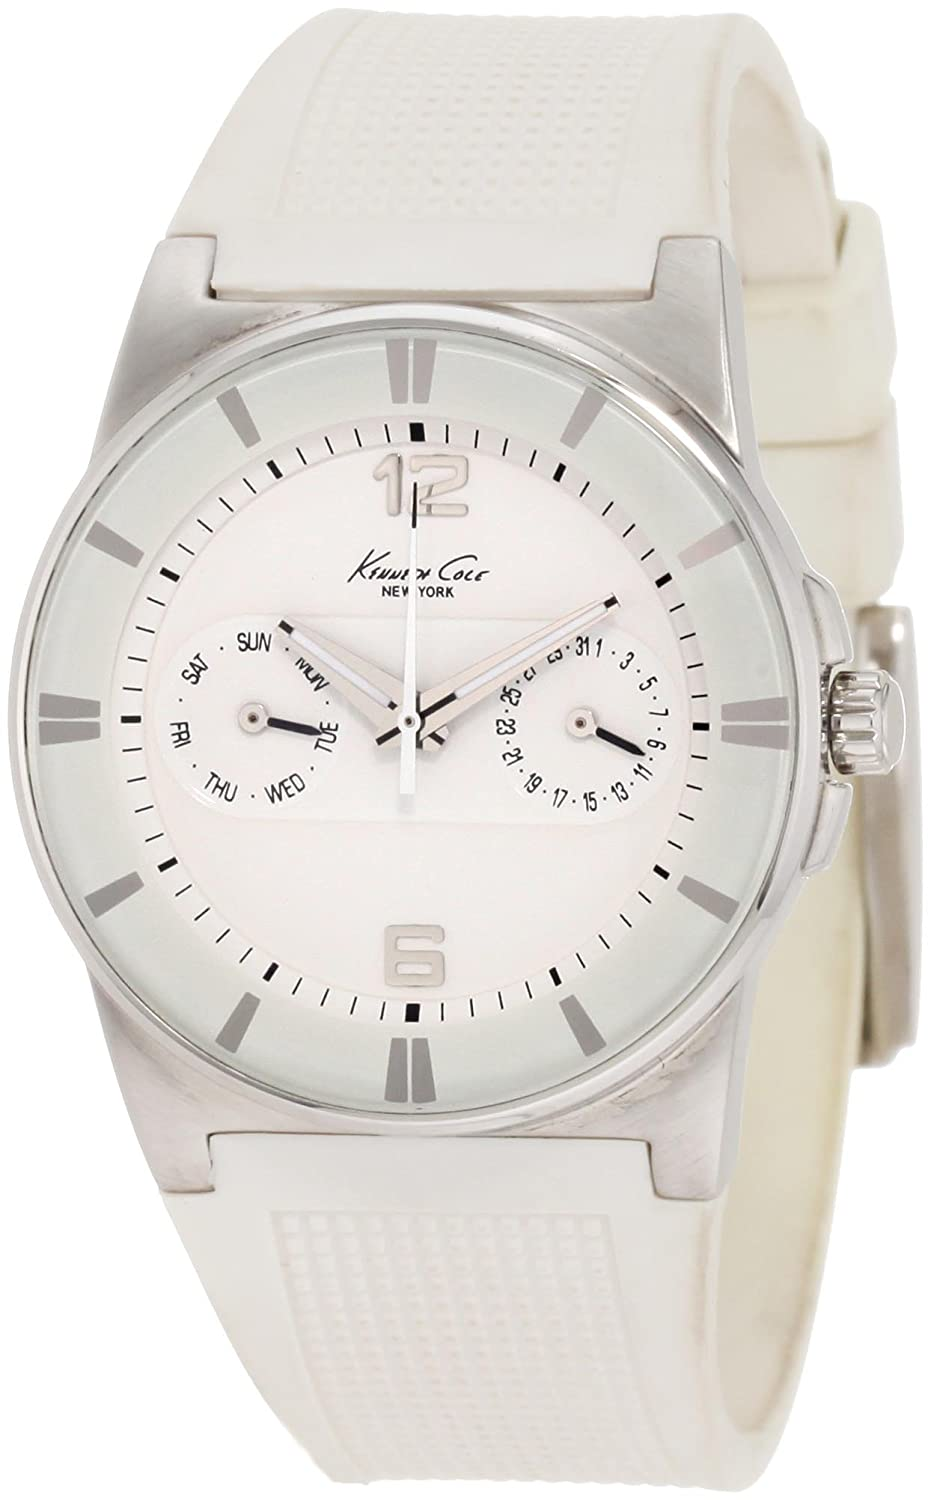 Amazon.com: Kenneth Cole New York Womens KC2461 Sport Chronograph Polyurethane Watch: Kenneth Cole: Watches